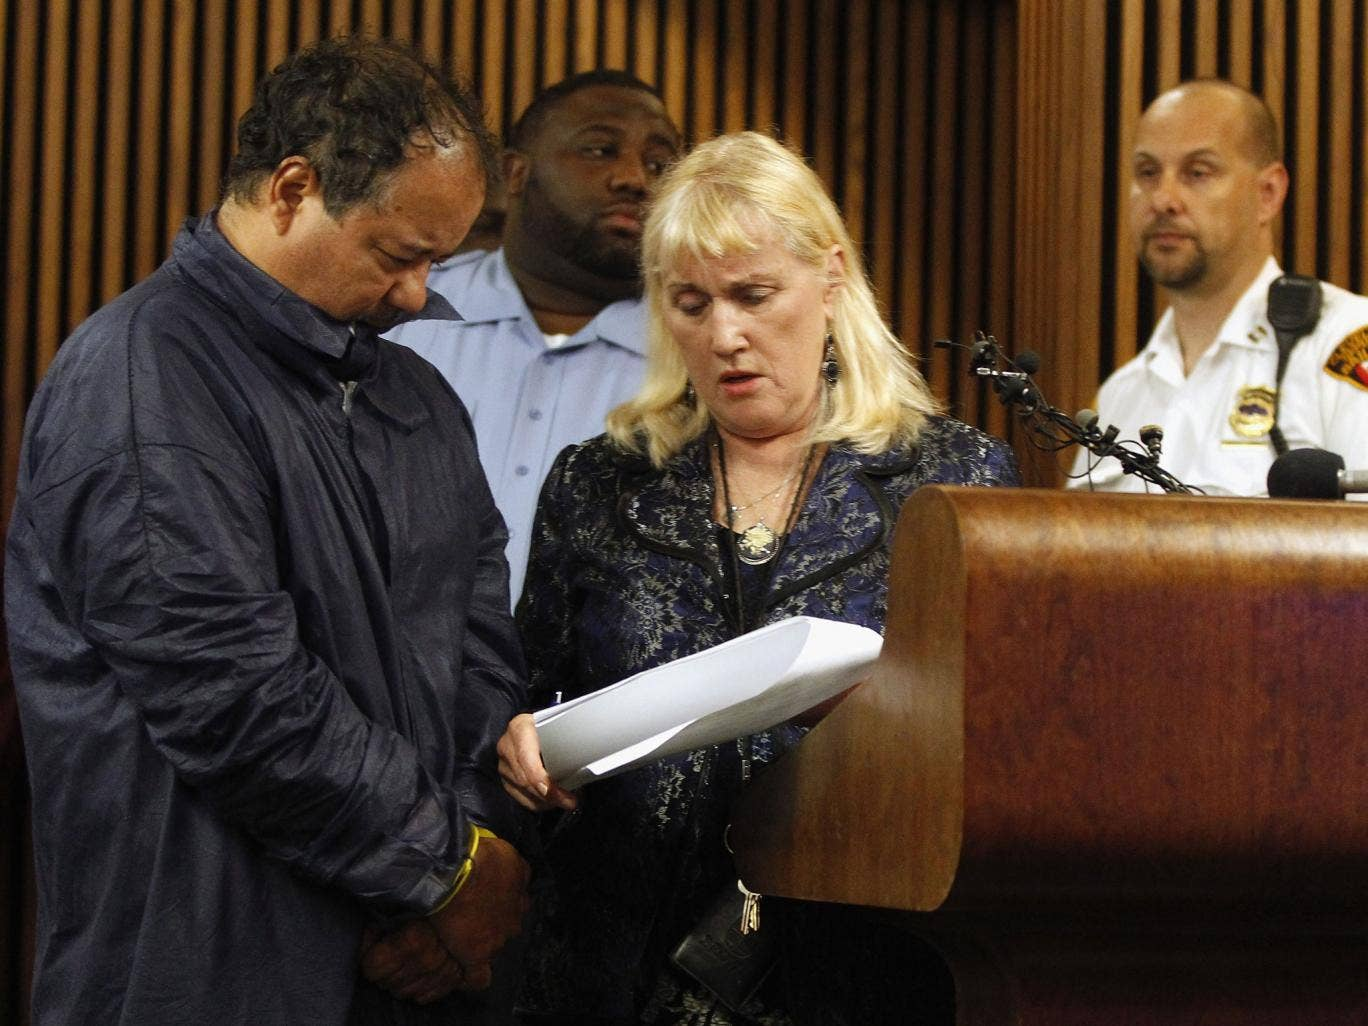 Ariel Castro is arraigned at Cleveland Municipal Court in front of judge Lauren Moore